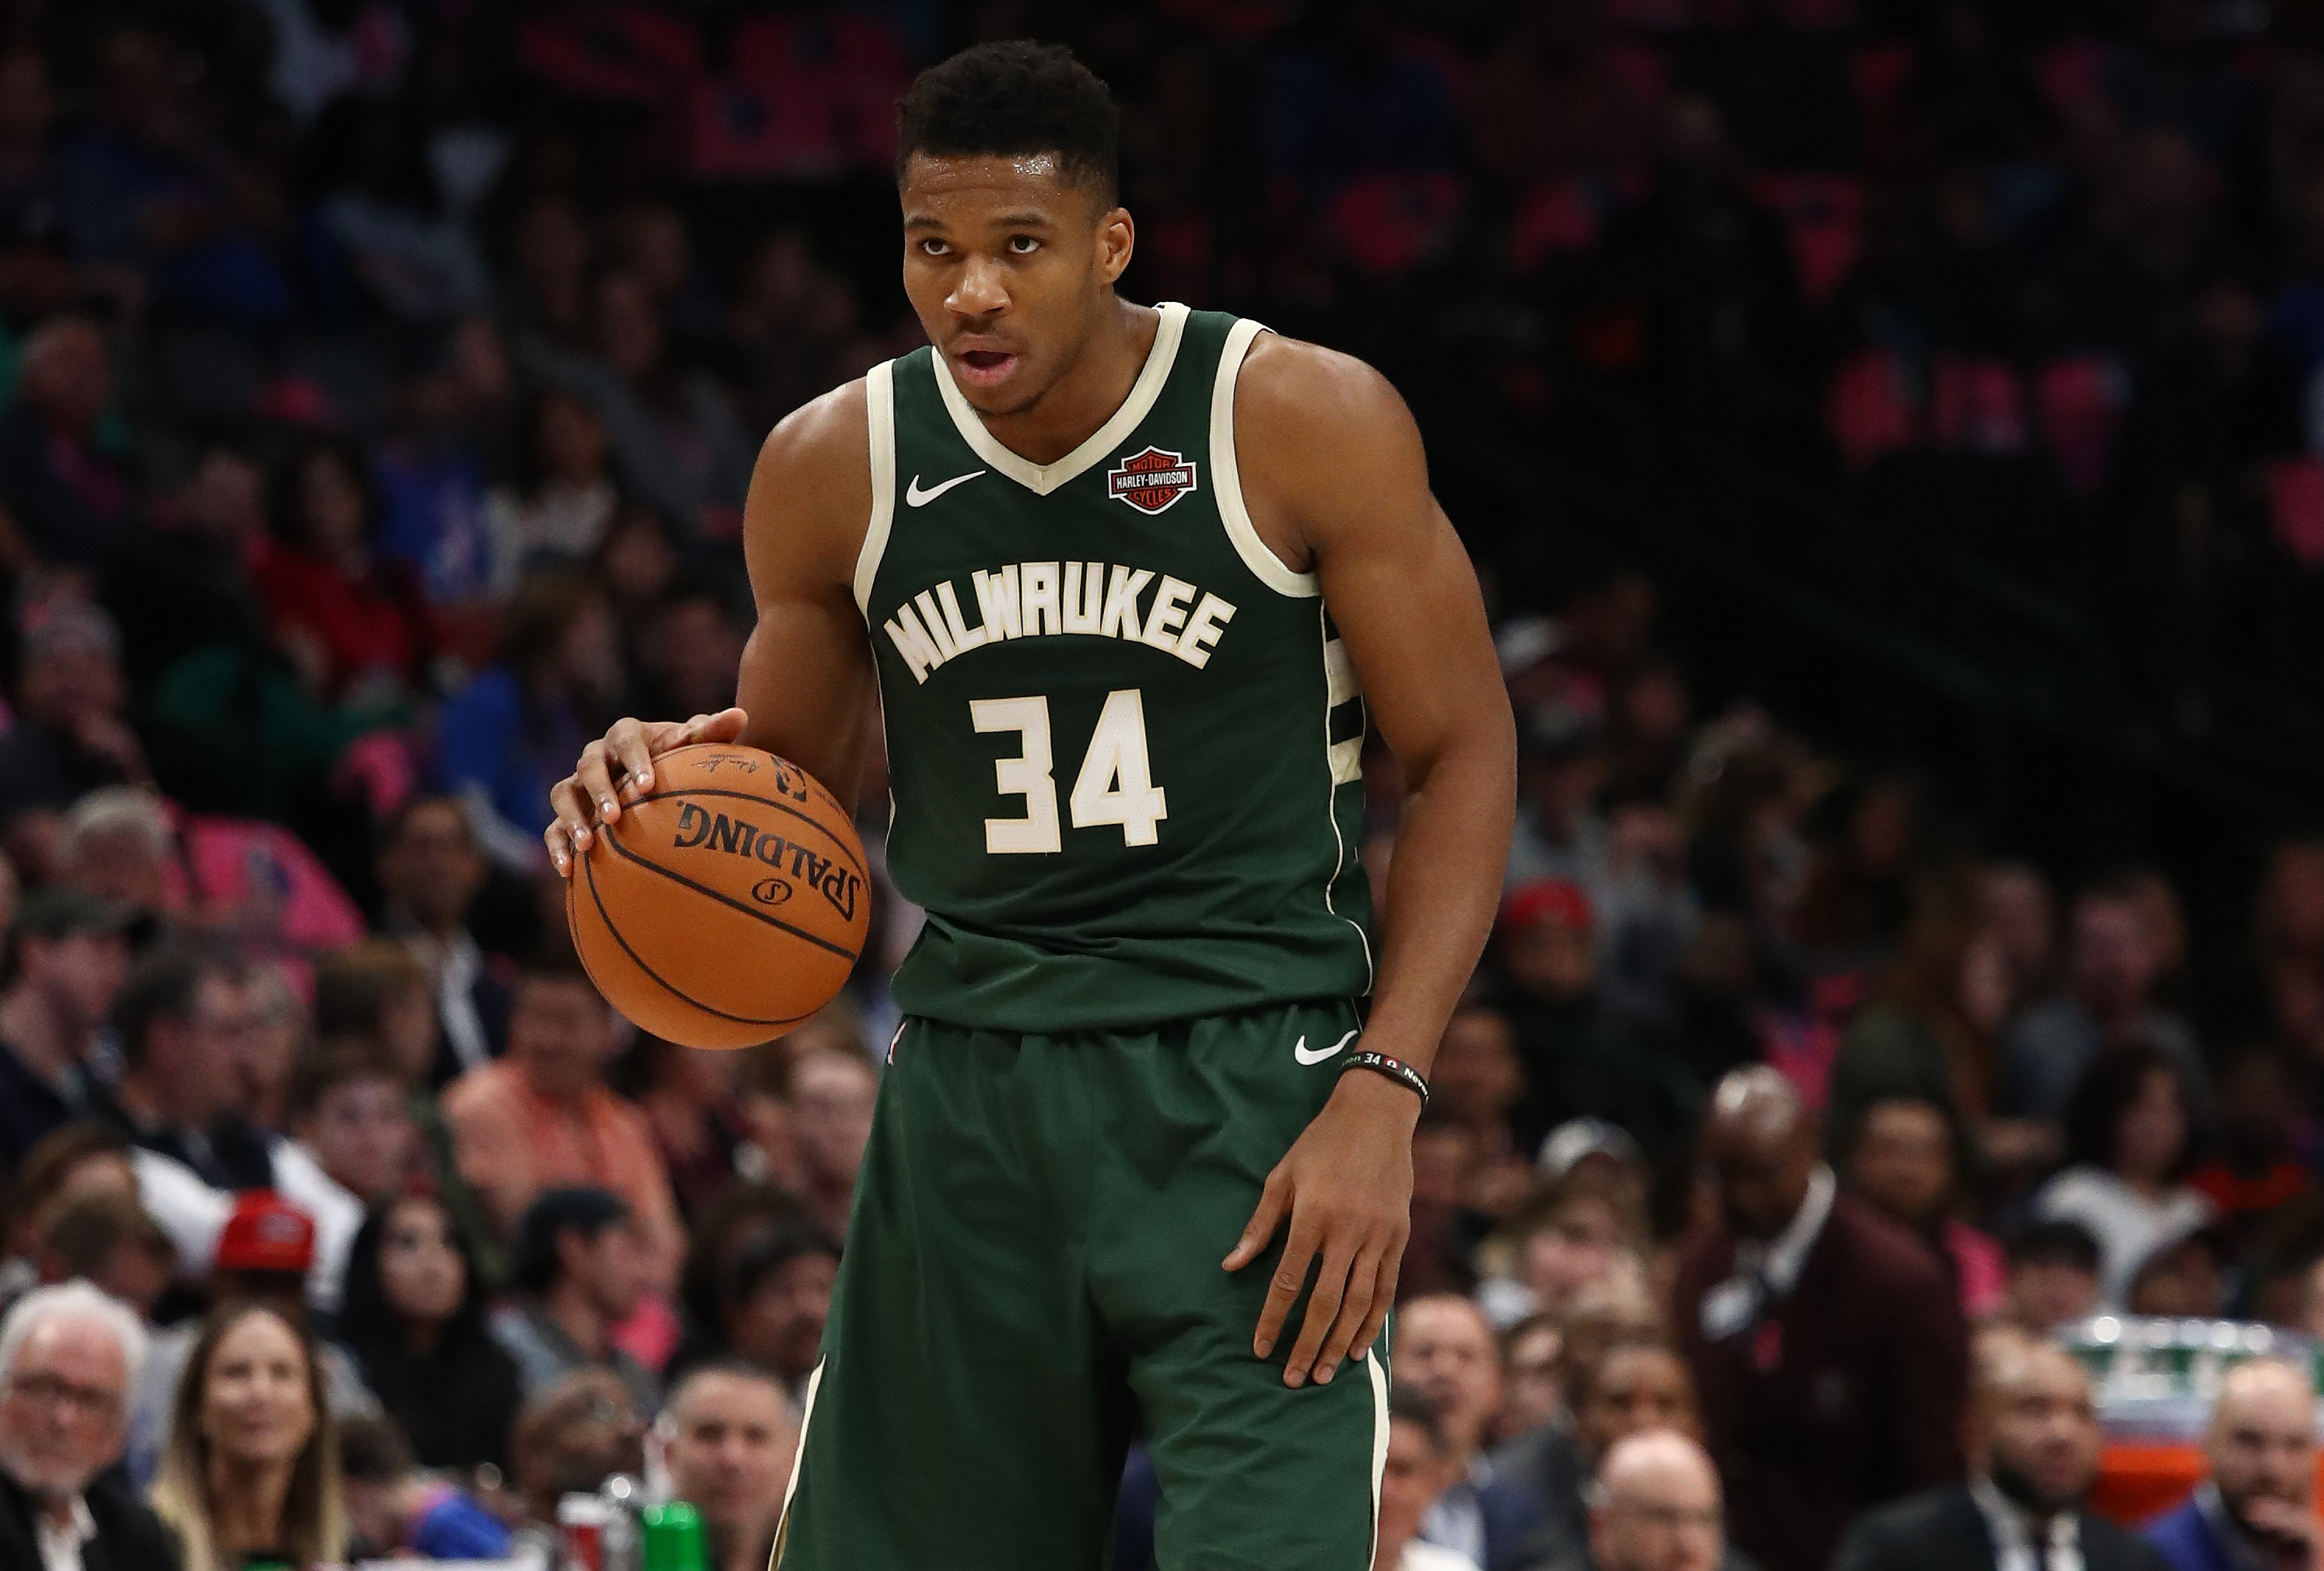 Giannis Antetokounmpo almost missed a game during his rookie year because he couldn't afford a taxi.